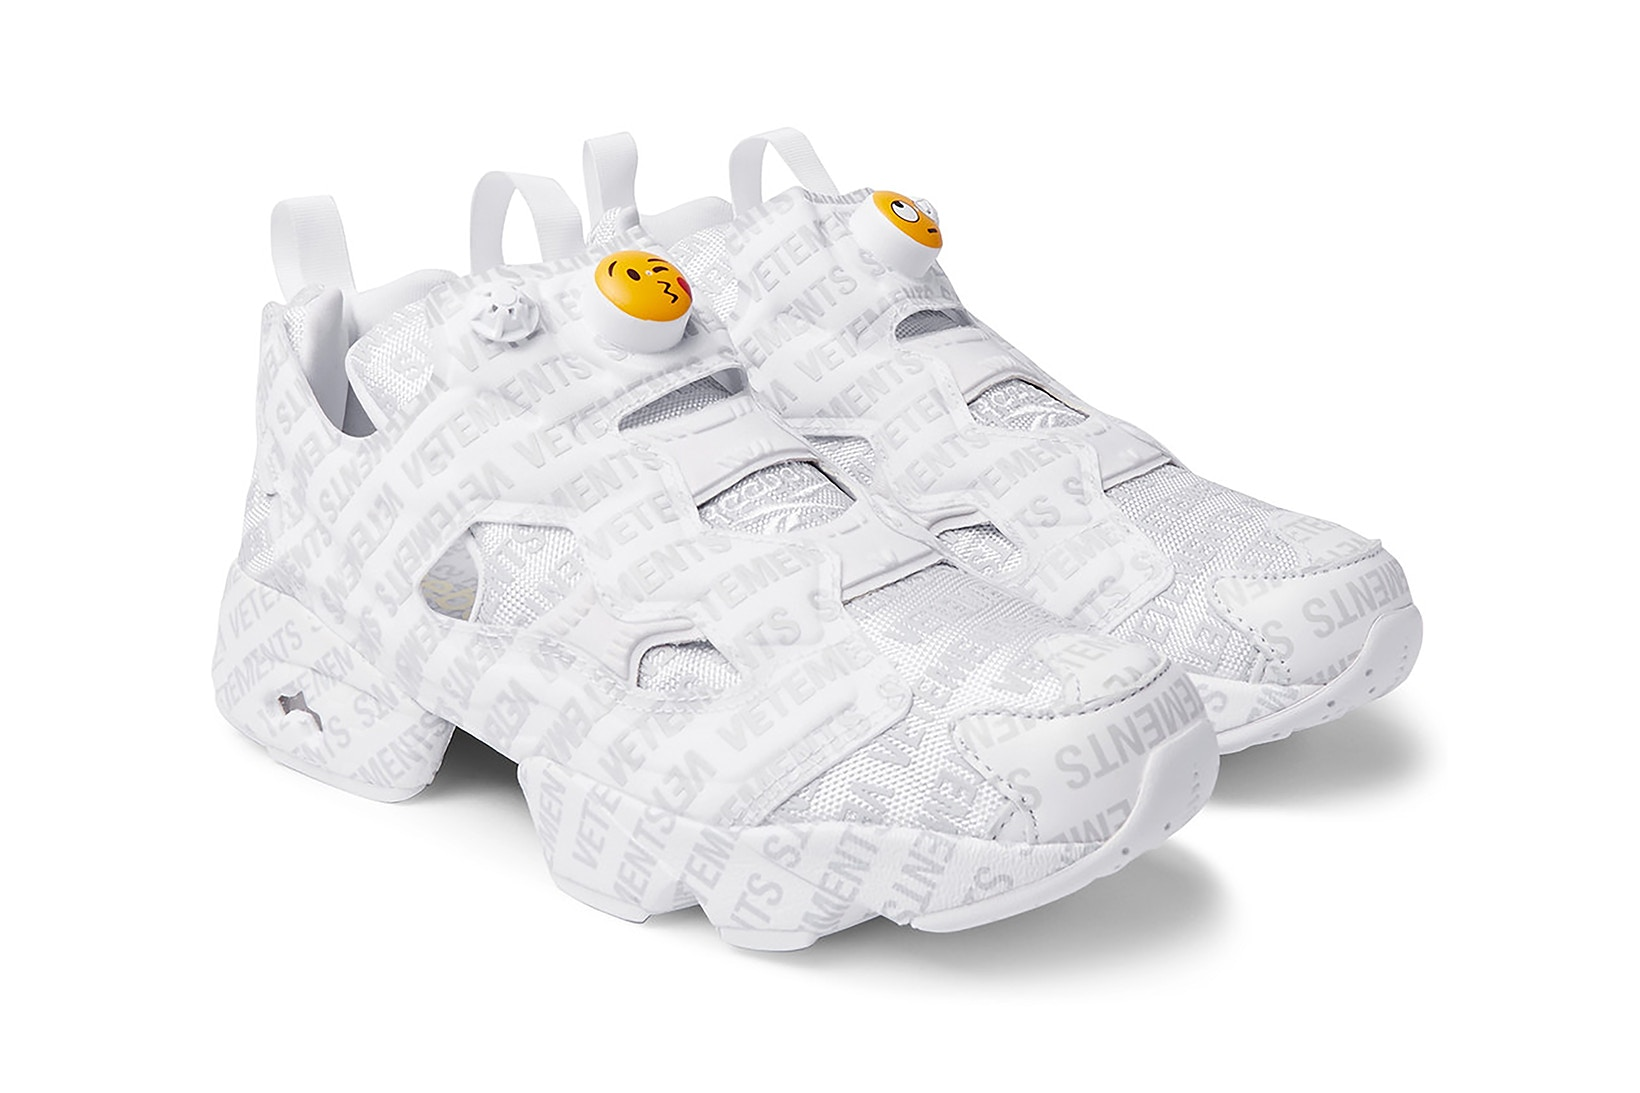 mr-porter-vetements-reebok-instapump-fury-emoji-02